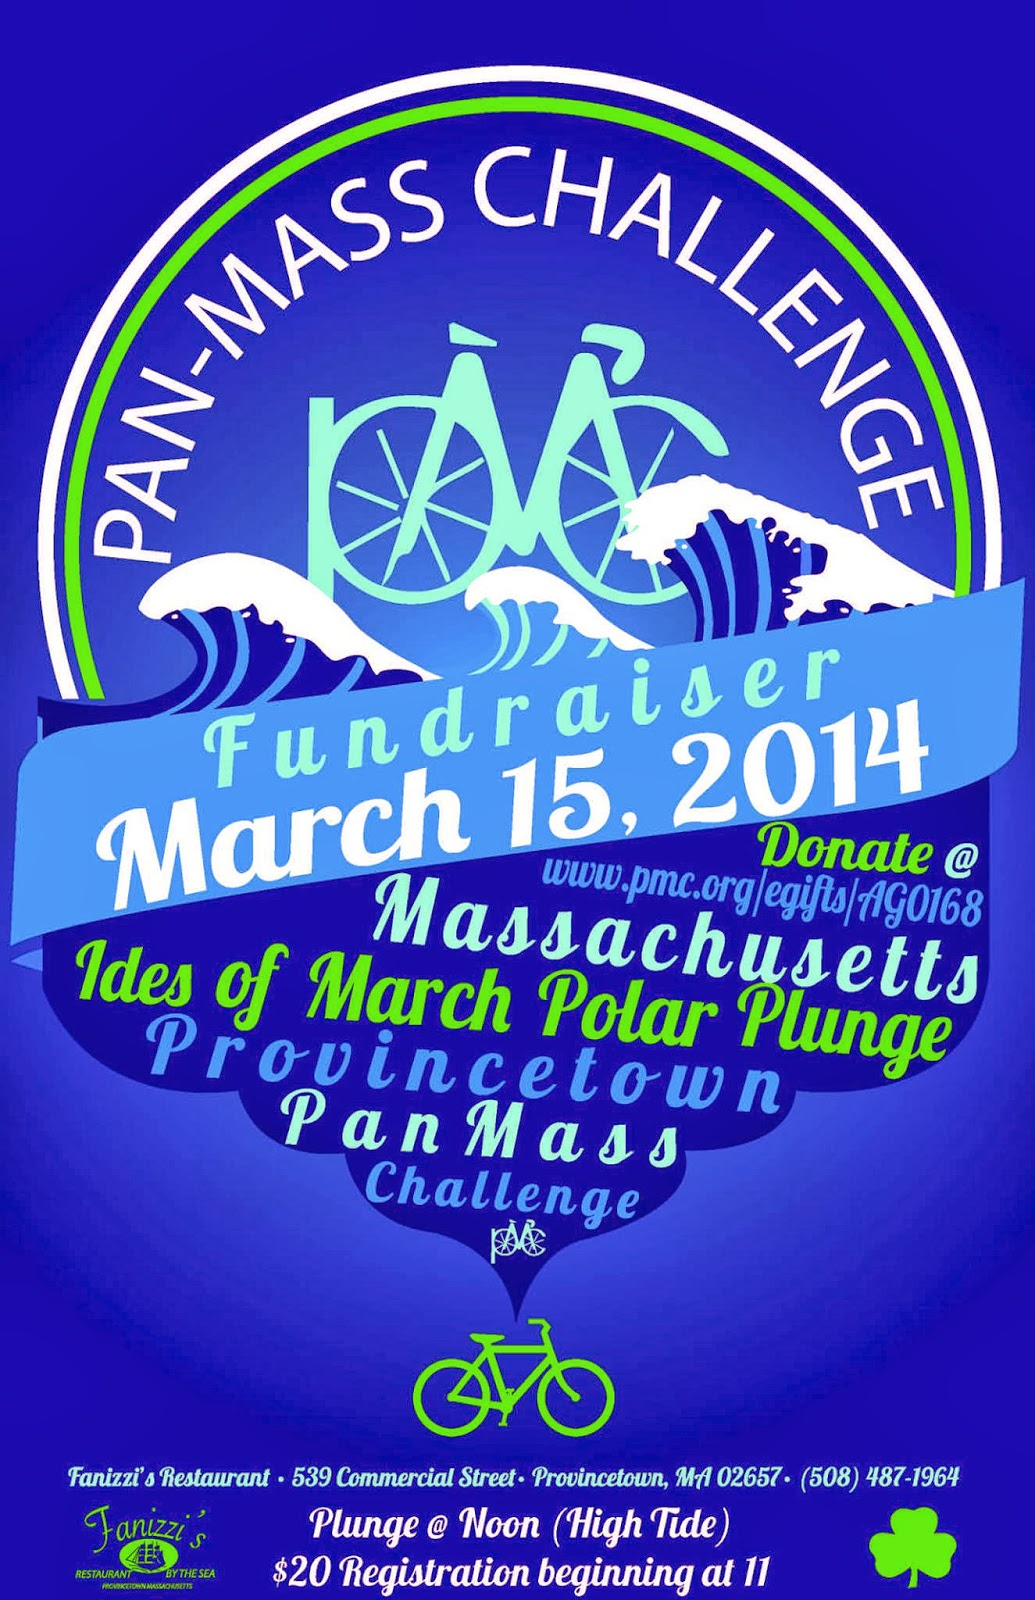 .@Fanizzis Restaurant #Provincetown @PanMassChalleng Fundraiser March 15, 2014 and Ides of March Polar Plunge